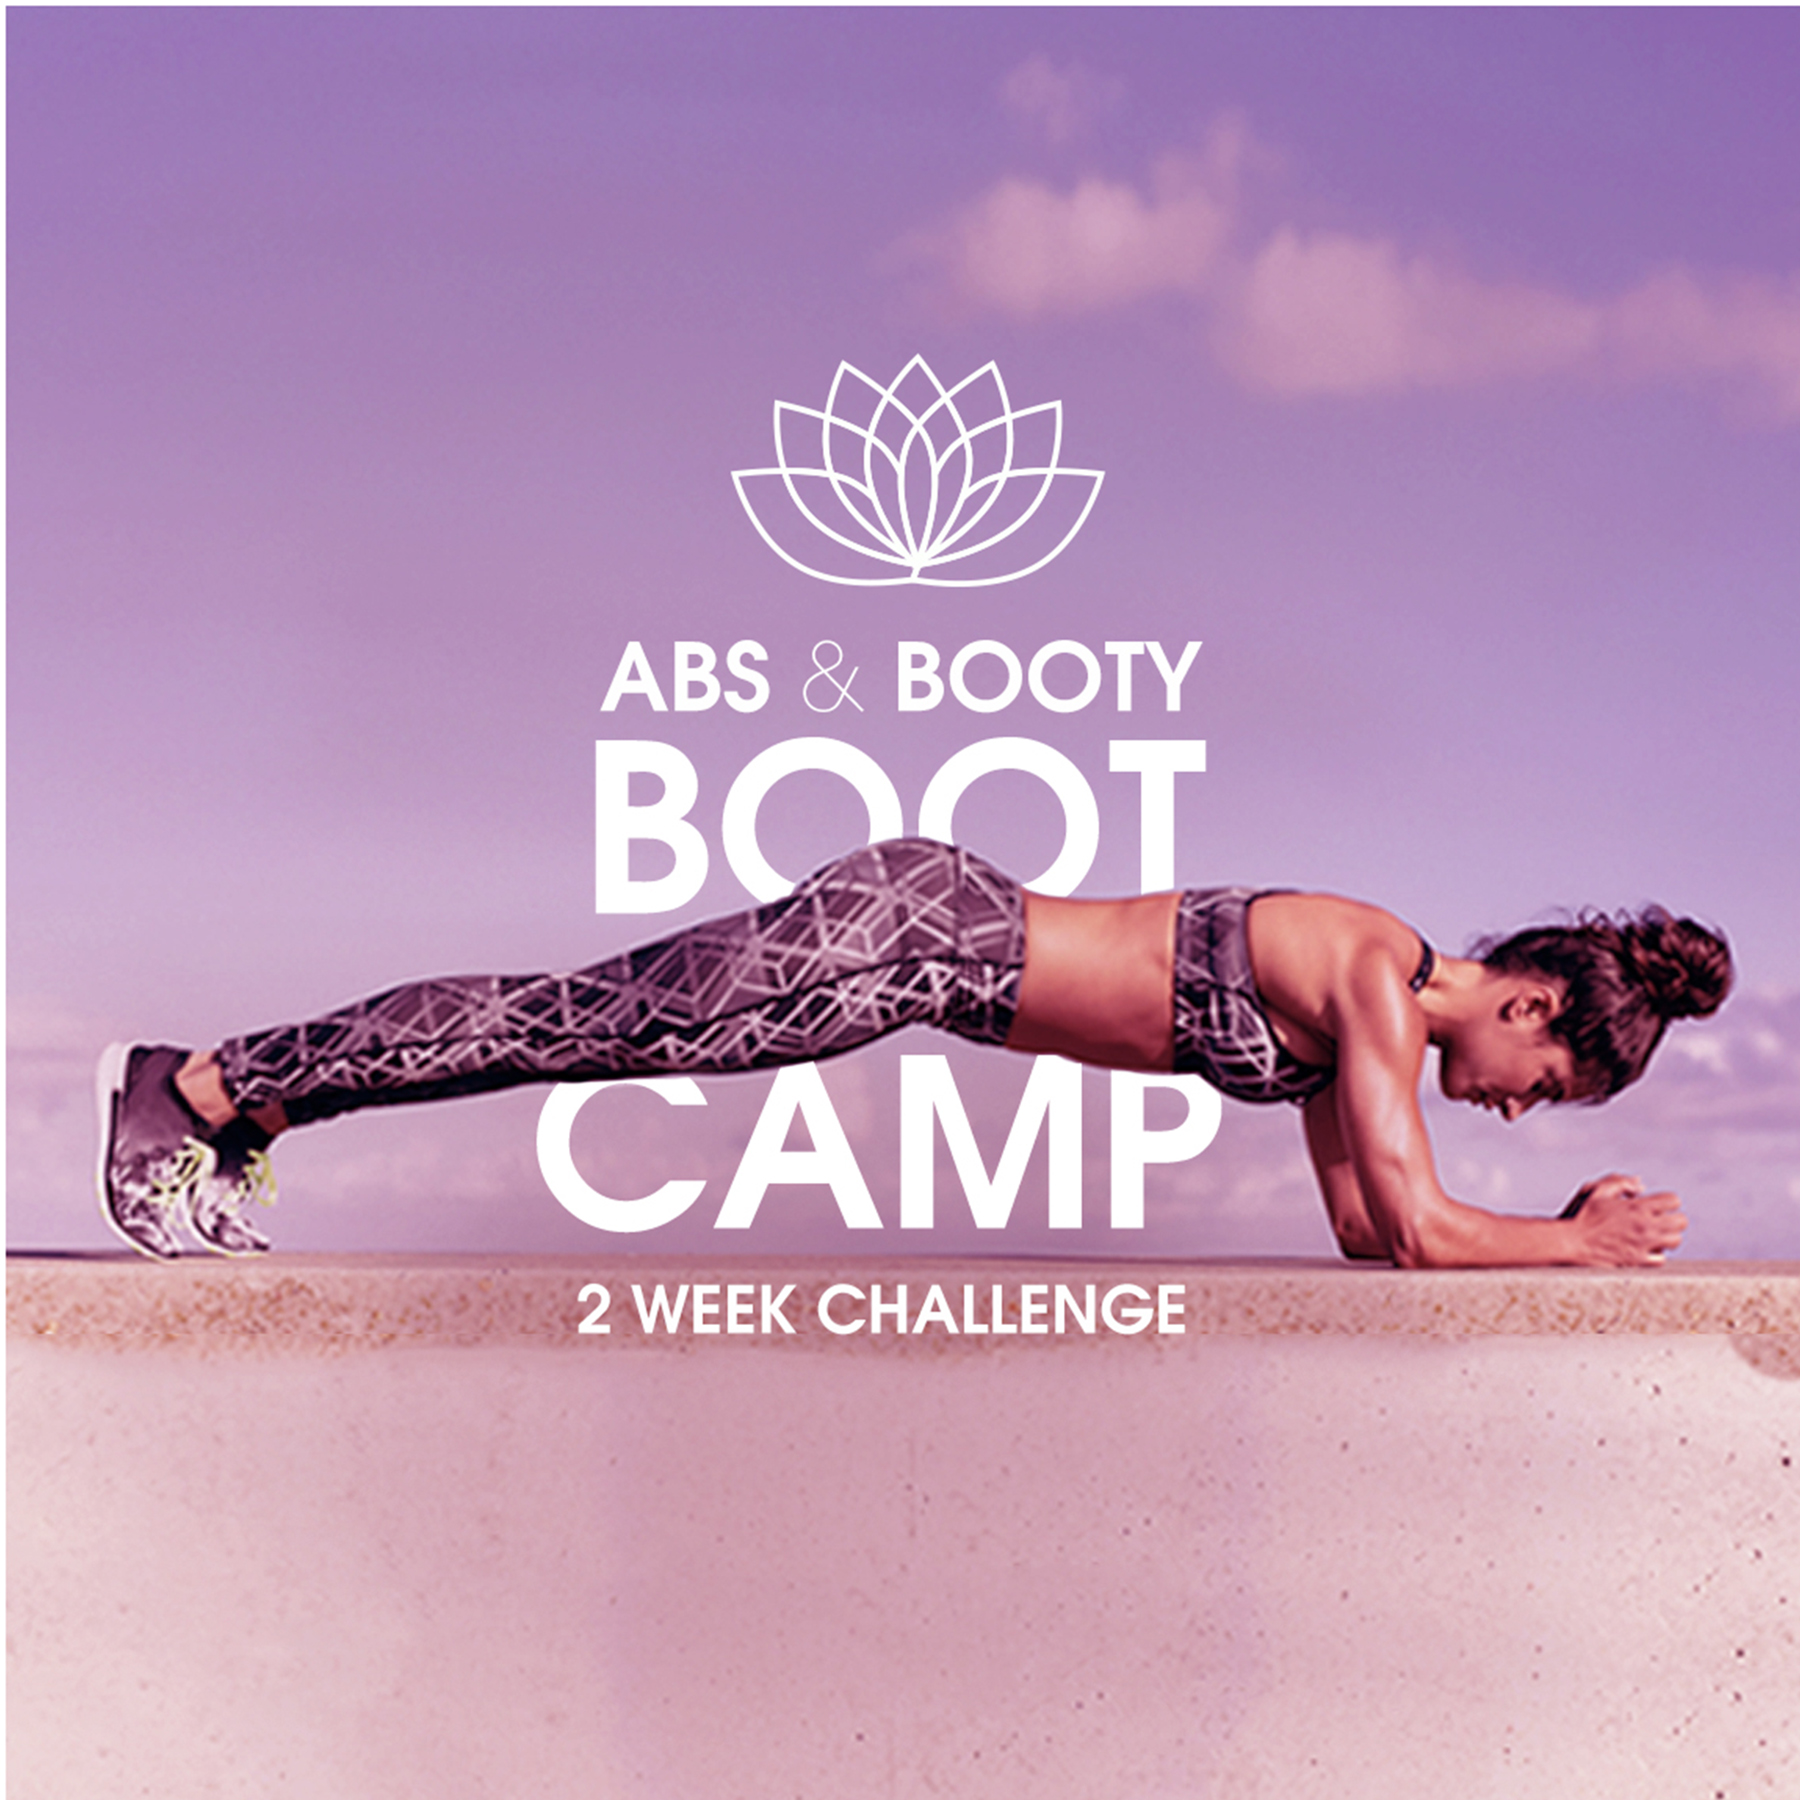 5 Reasons to Strengthen your Abs & Booty: 2-Week Abs & Booty Bootcamp Challenge